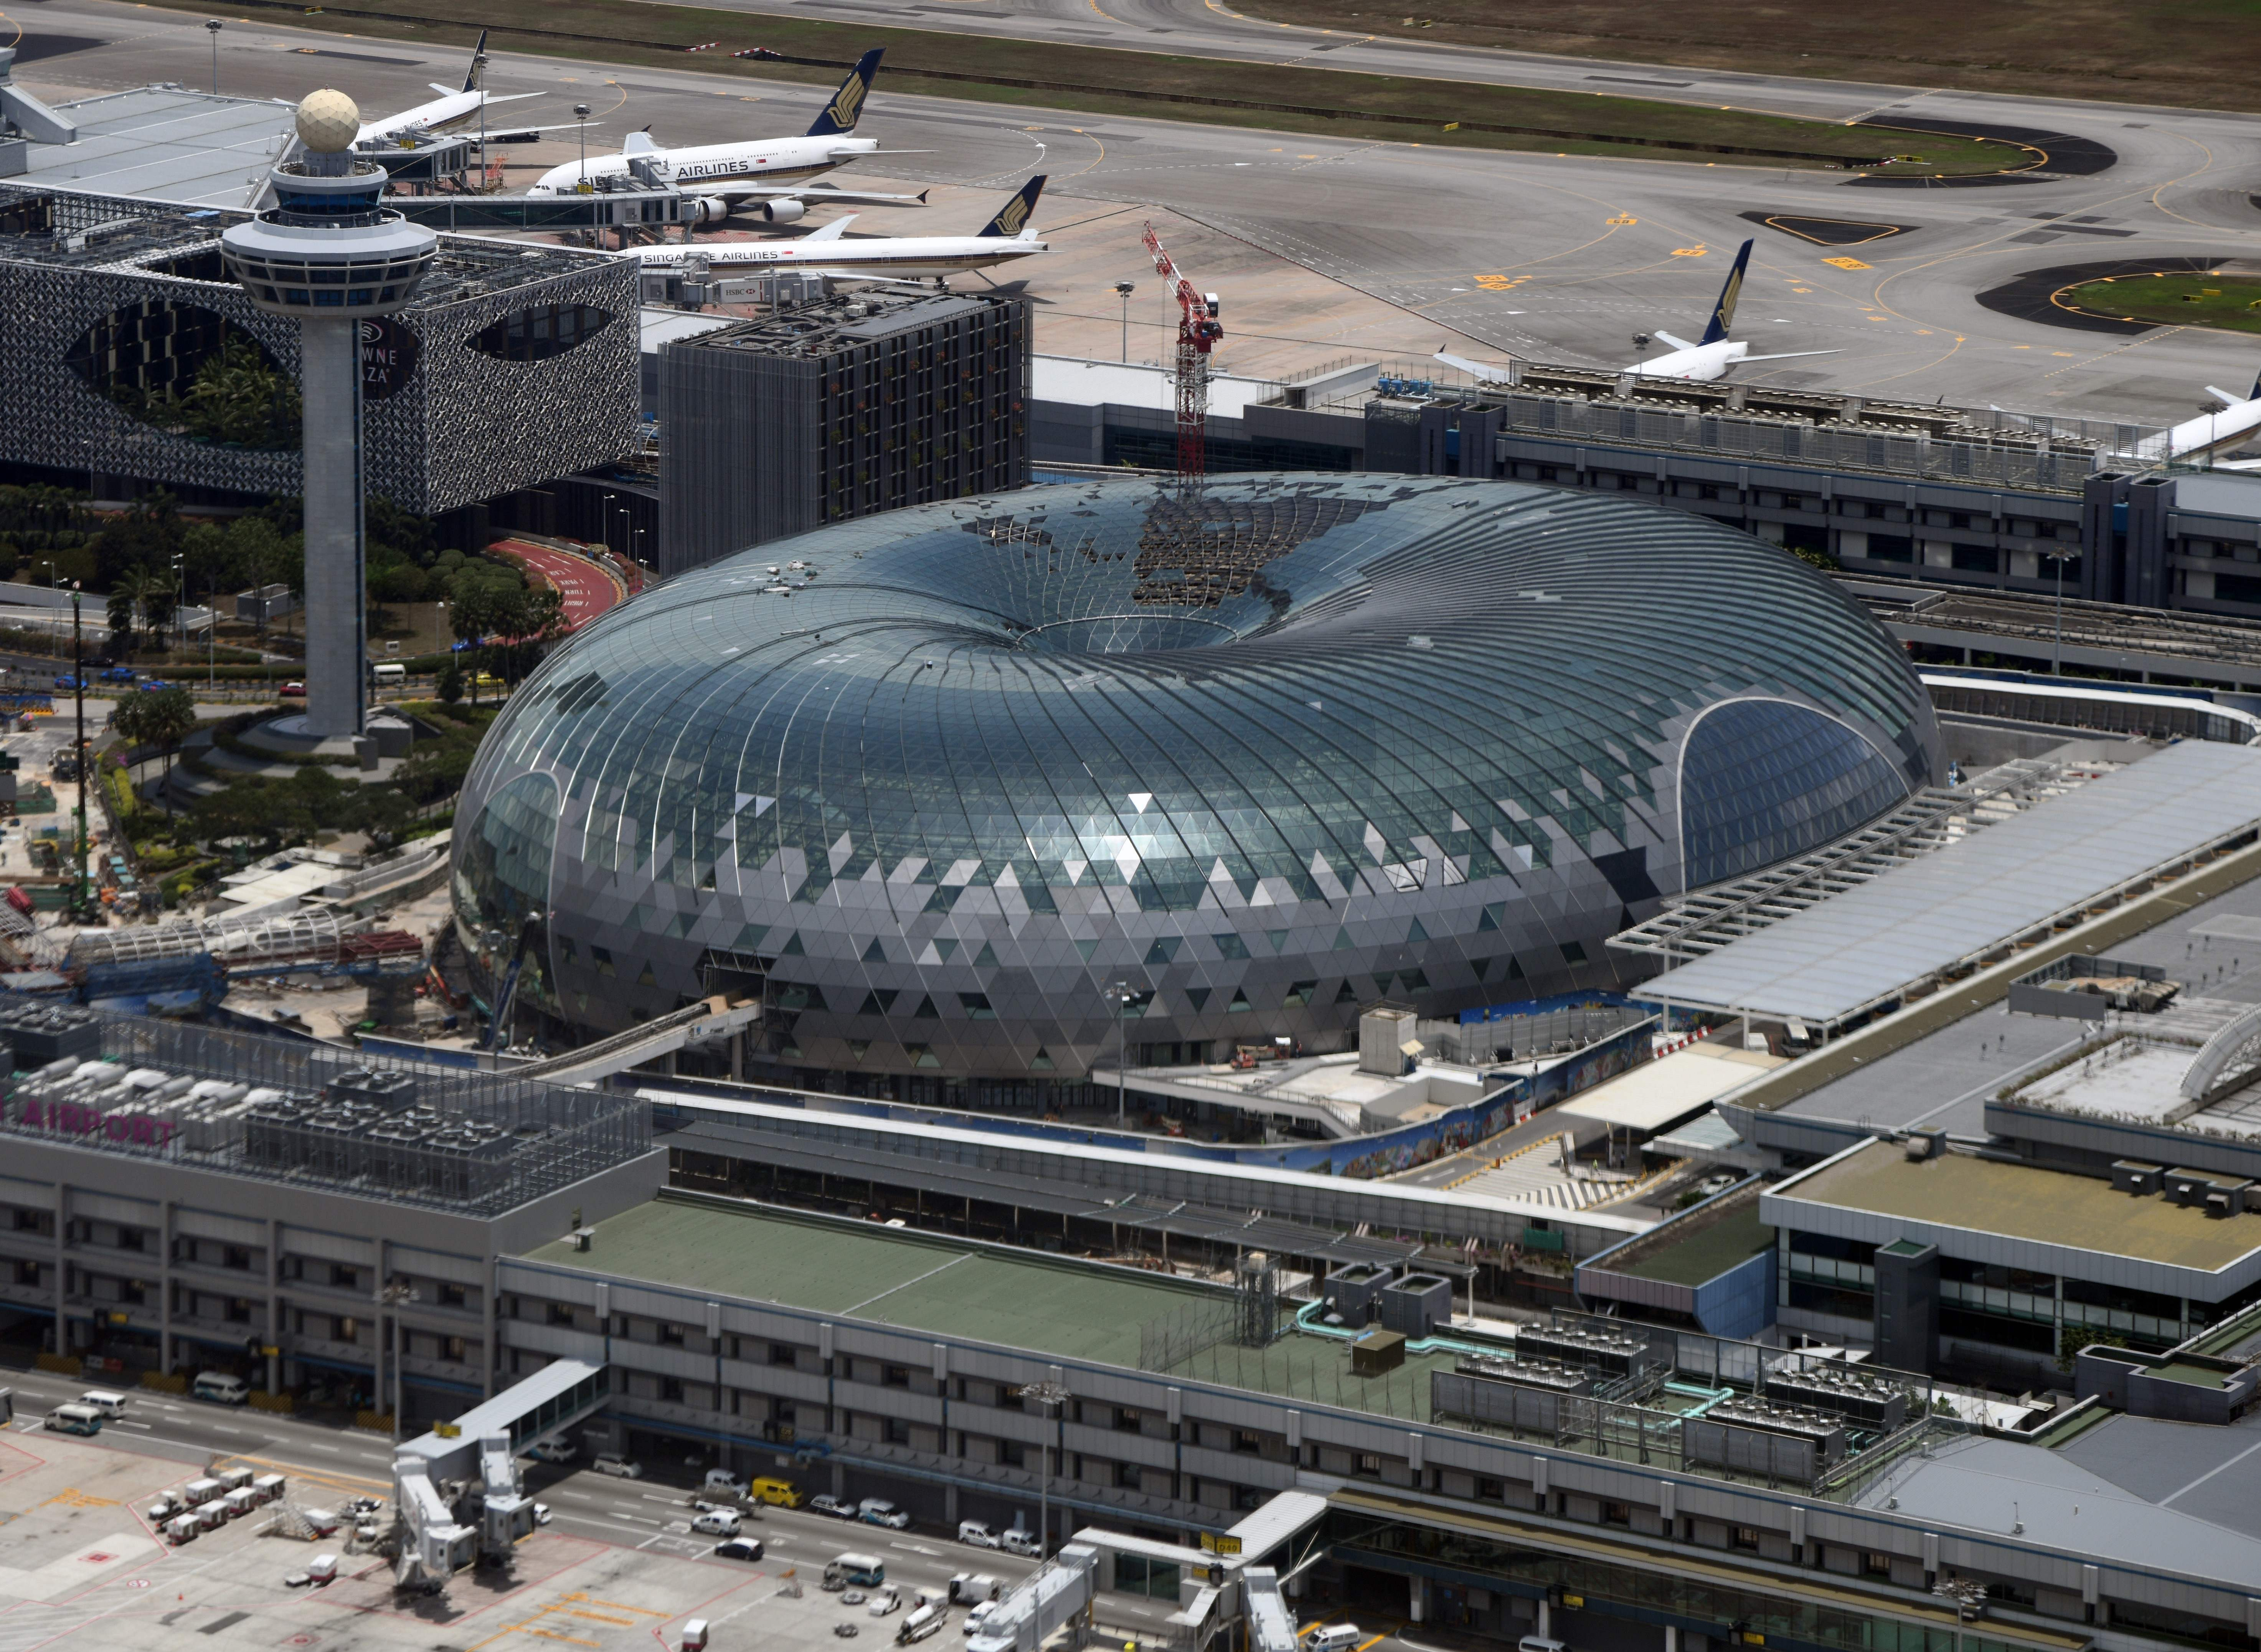 An aerial view taken from a commercial flight shows the Jewel Changi Airport